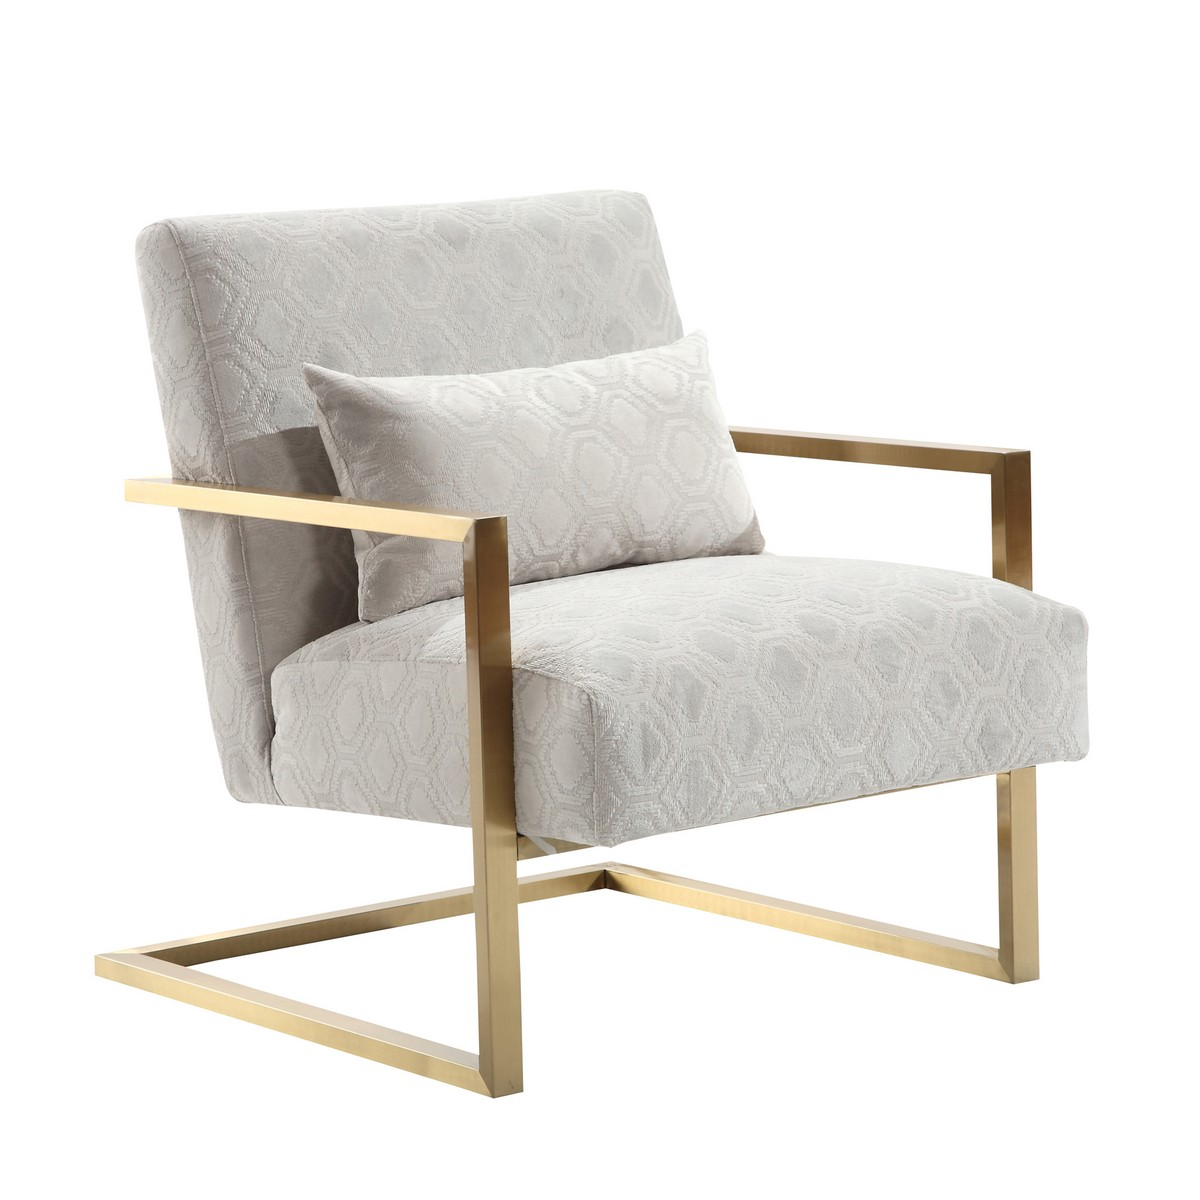 Armen living skyline modern accent chair in cream chenille for Contemporary seating chairs